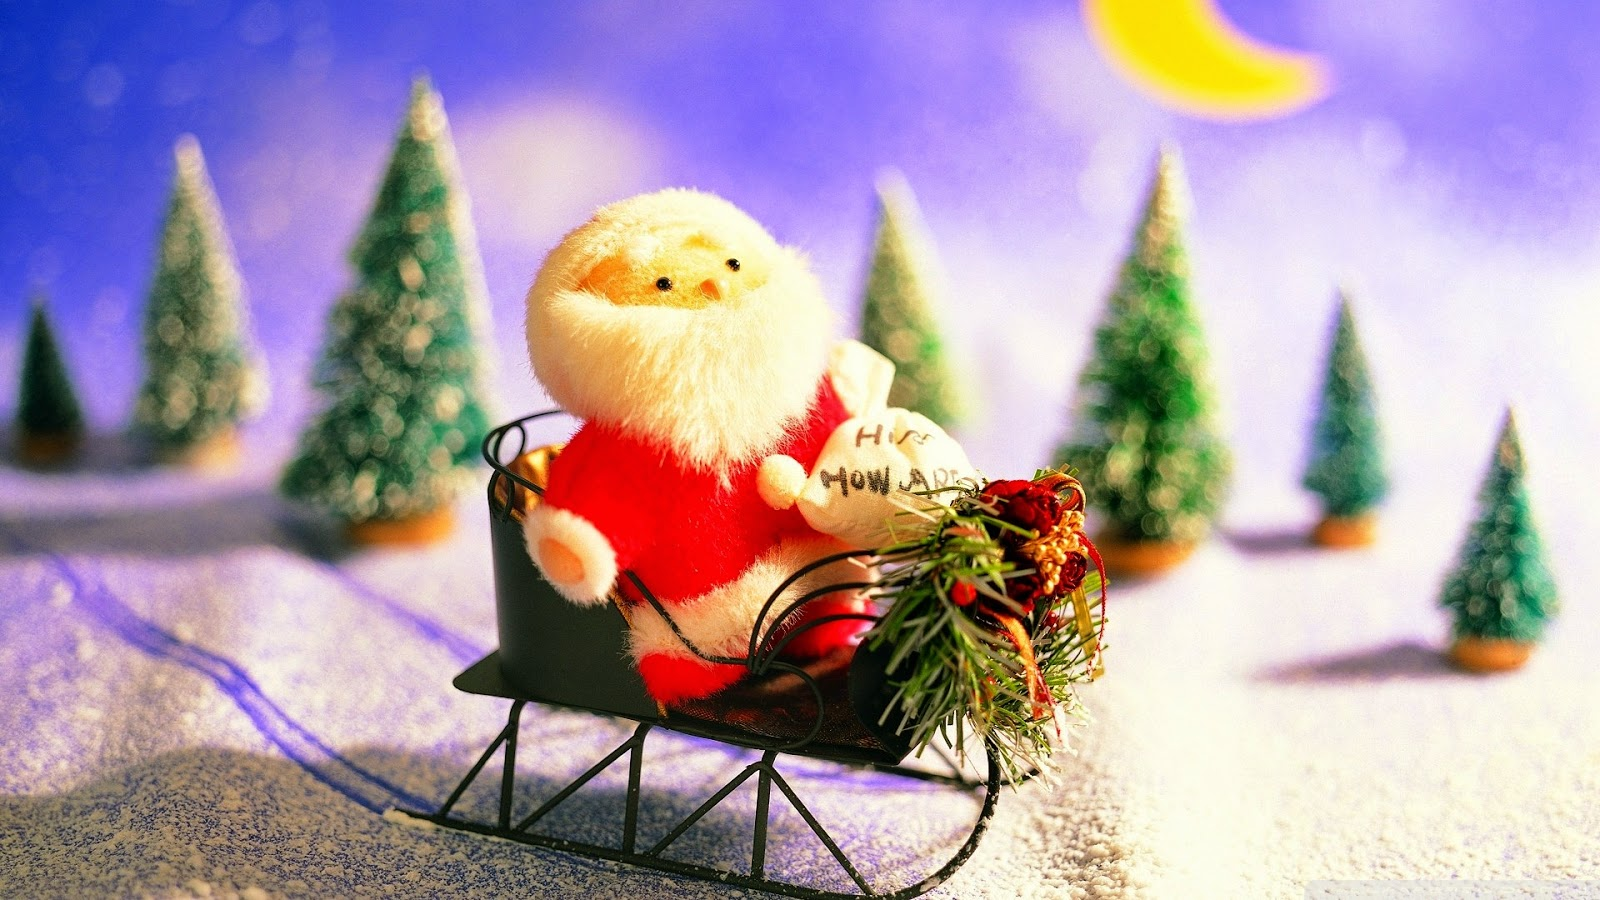 santa_claus_is_coming_to_town-toy-christmas-dolls-image-1920x1080.jpg